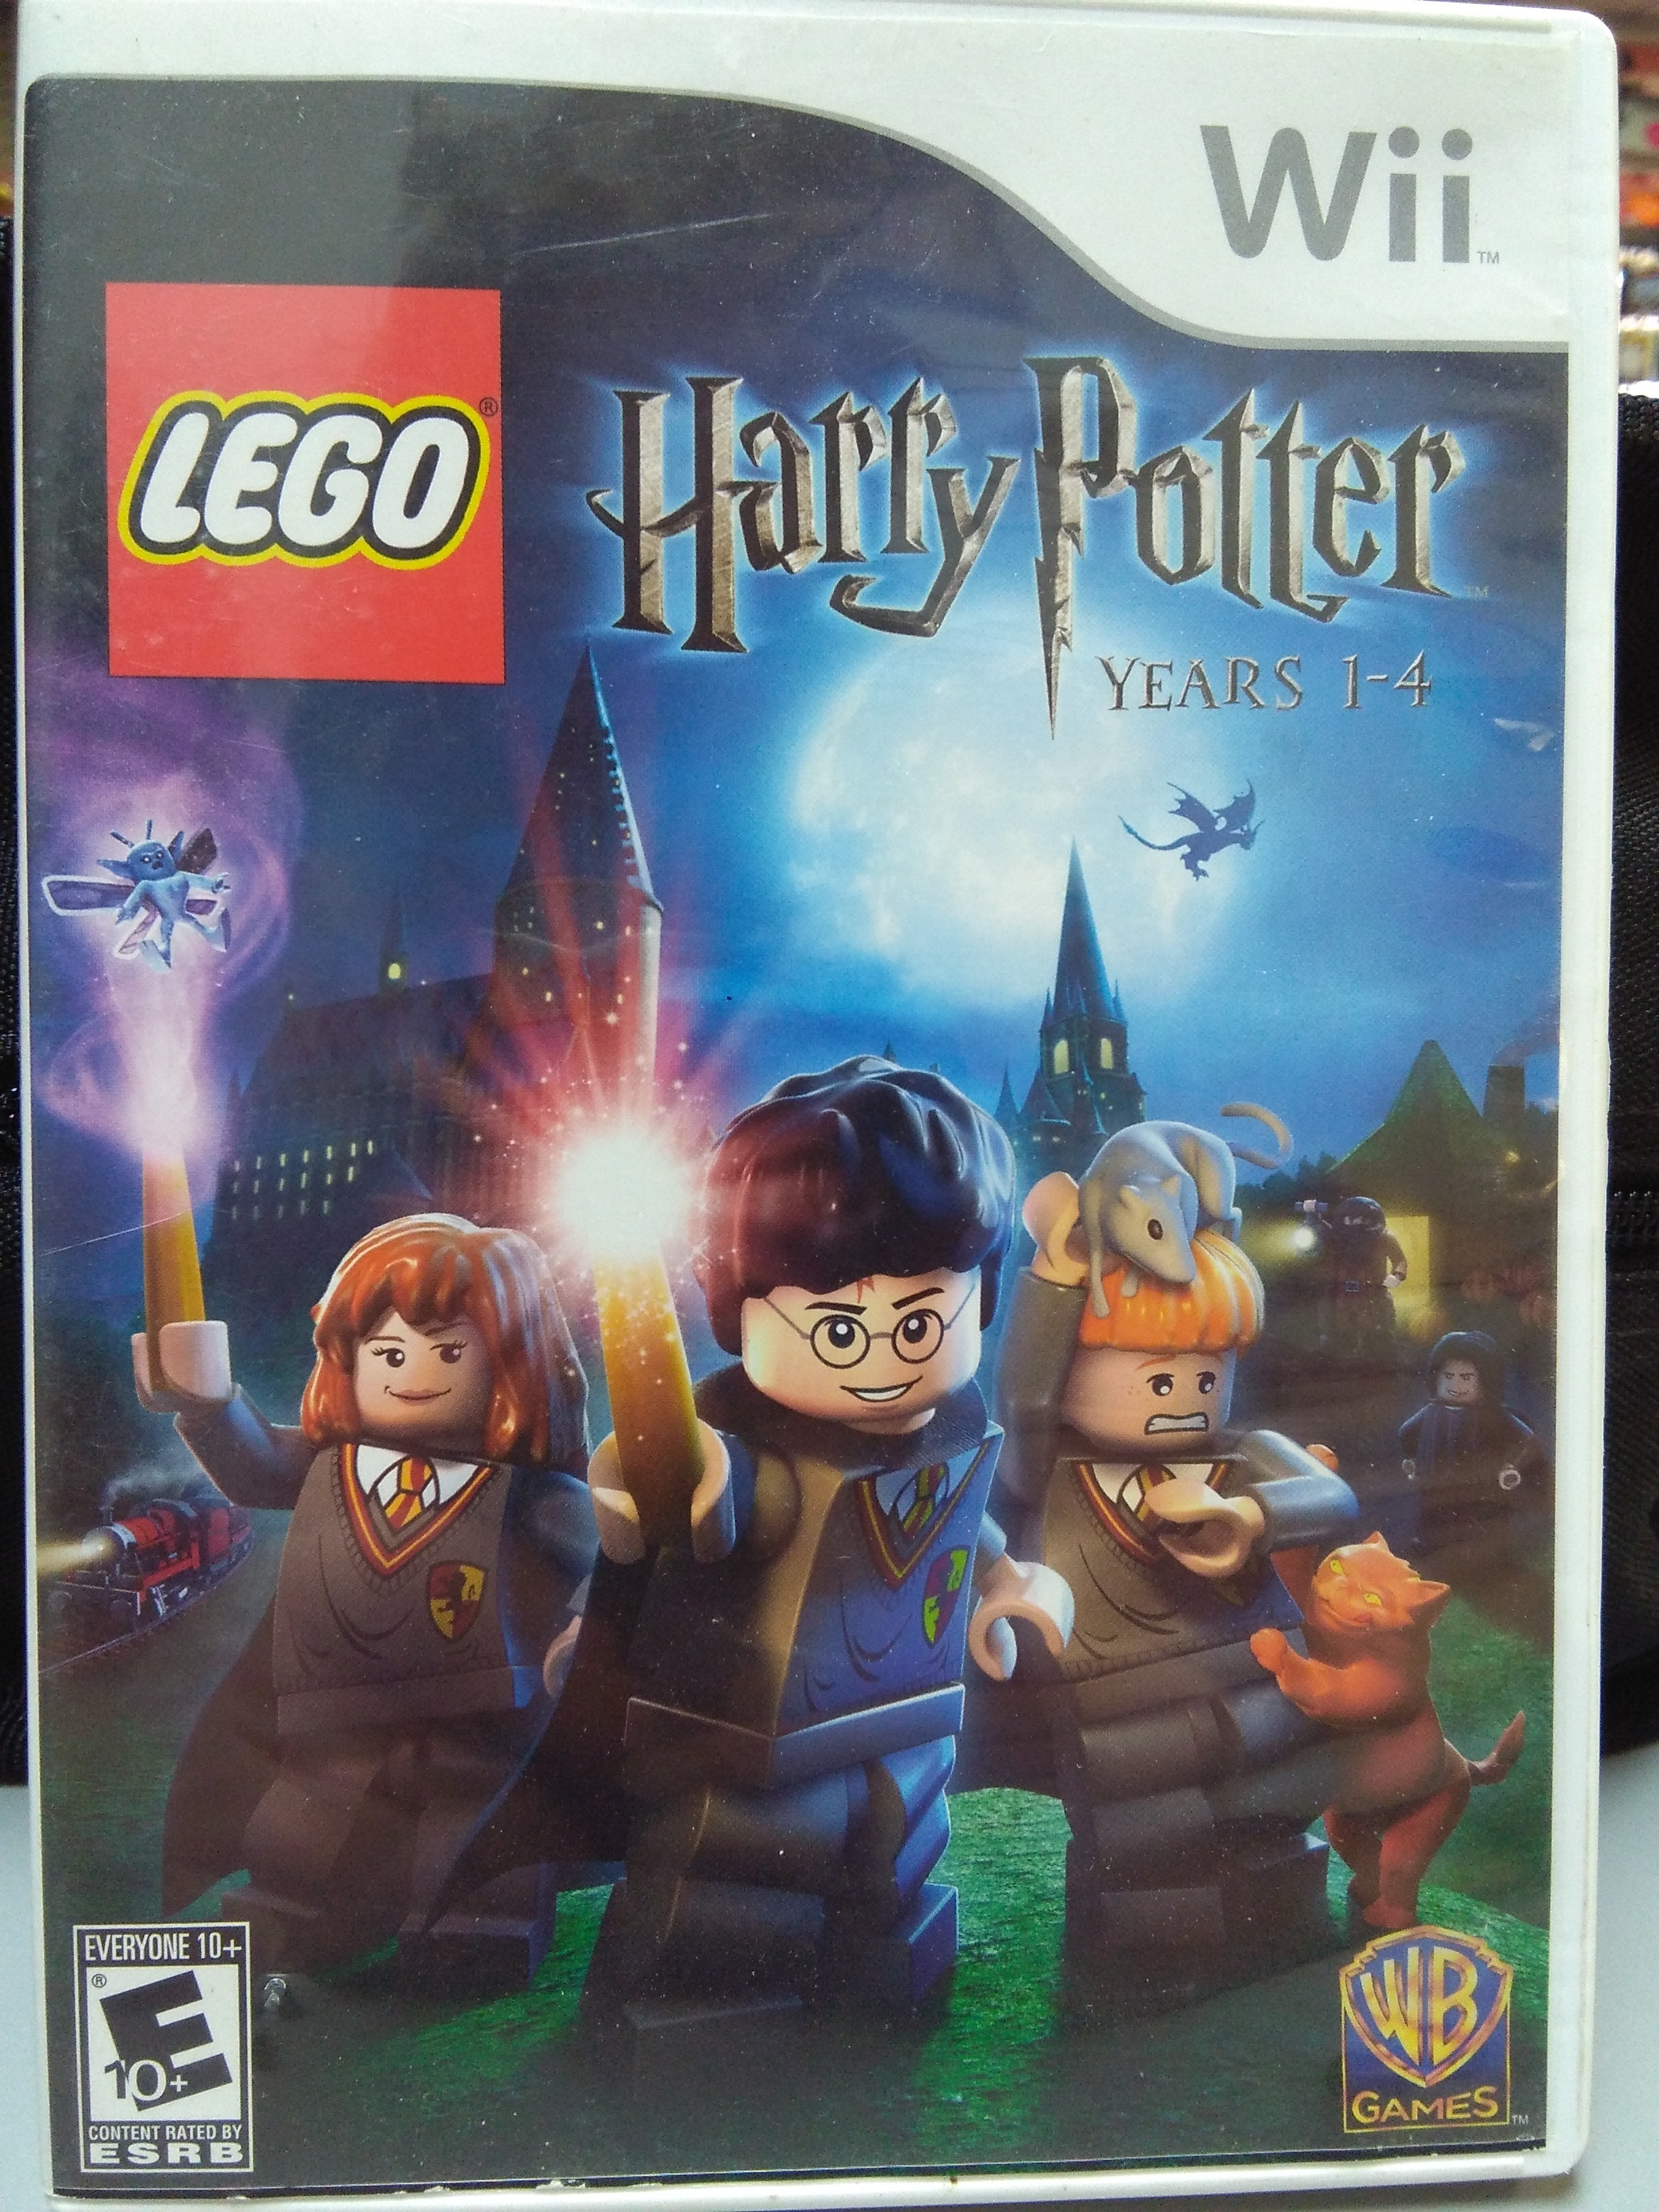 Lego Harry Potter Years 1-4 WII GAME